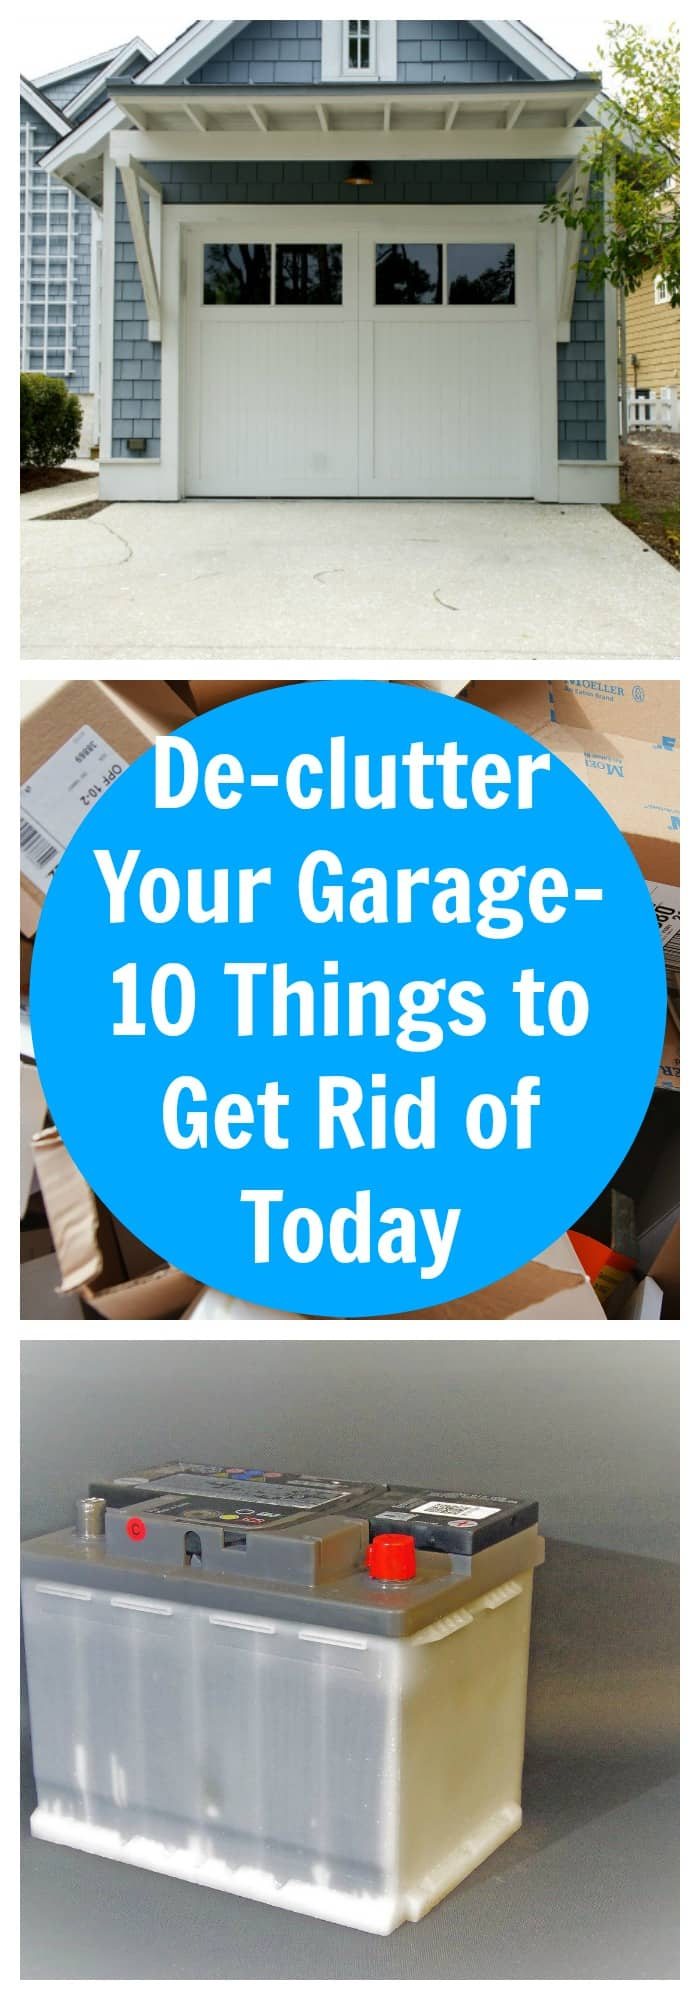 De clutter your garage 10 things to get rid of today the for How to get rid of clutter